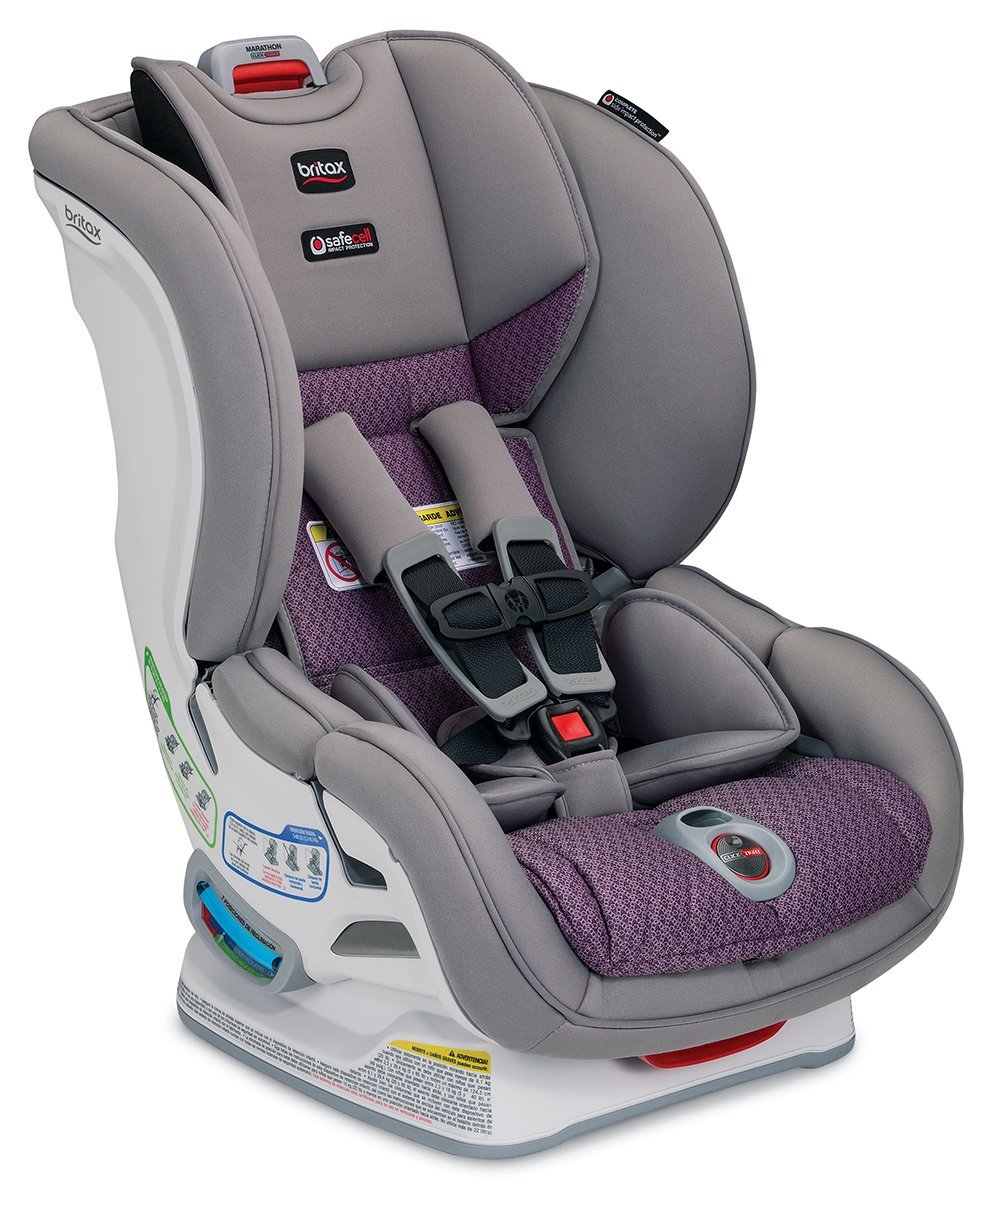 Convertible Car Seats: My Top 5 - Confessions of a Northern Belle